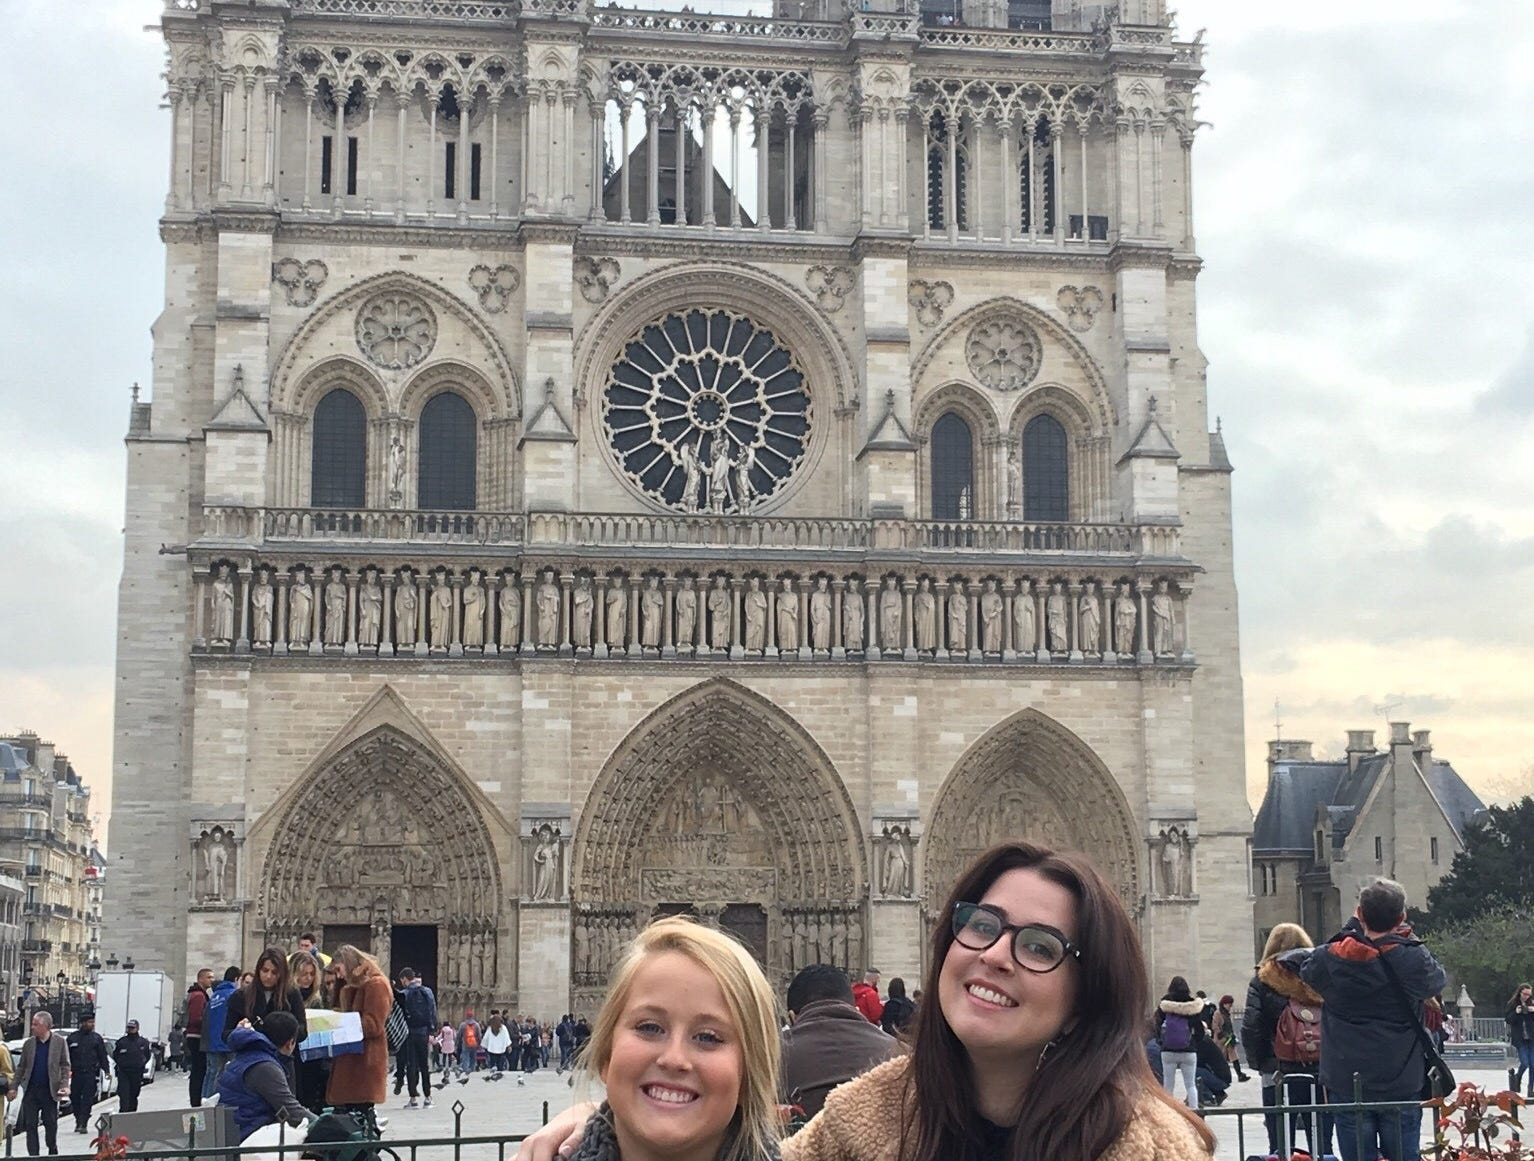 My daughters and I just visited Notre Dame on March 20. We are devastated!